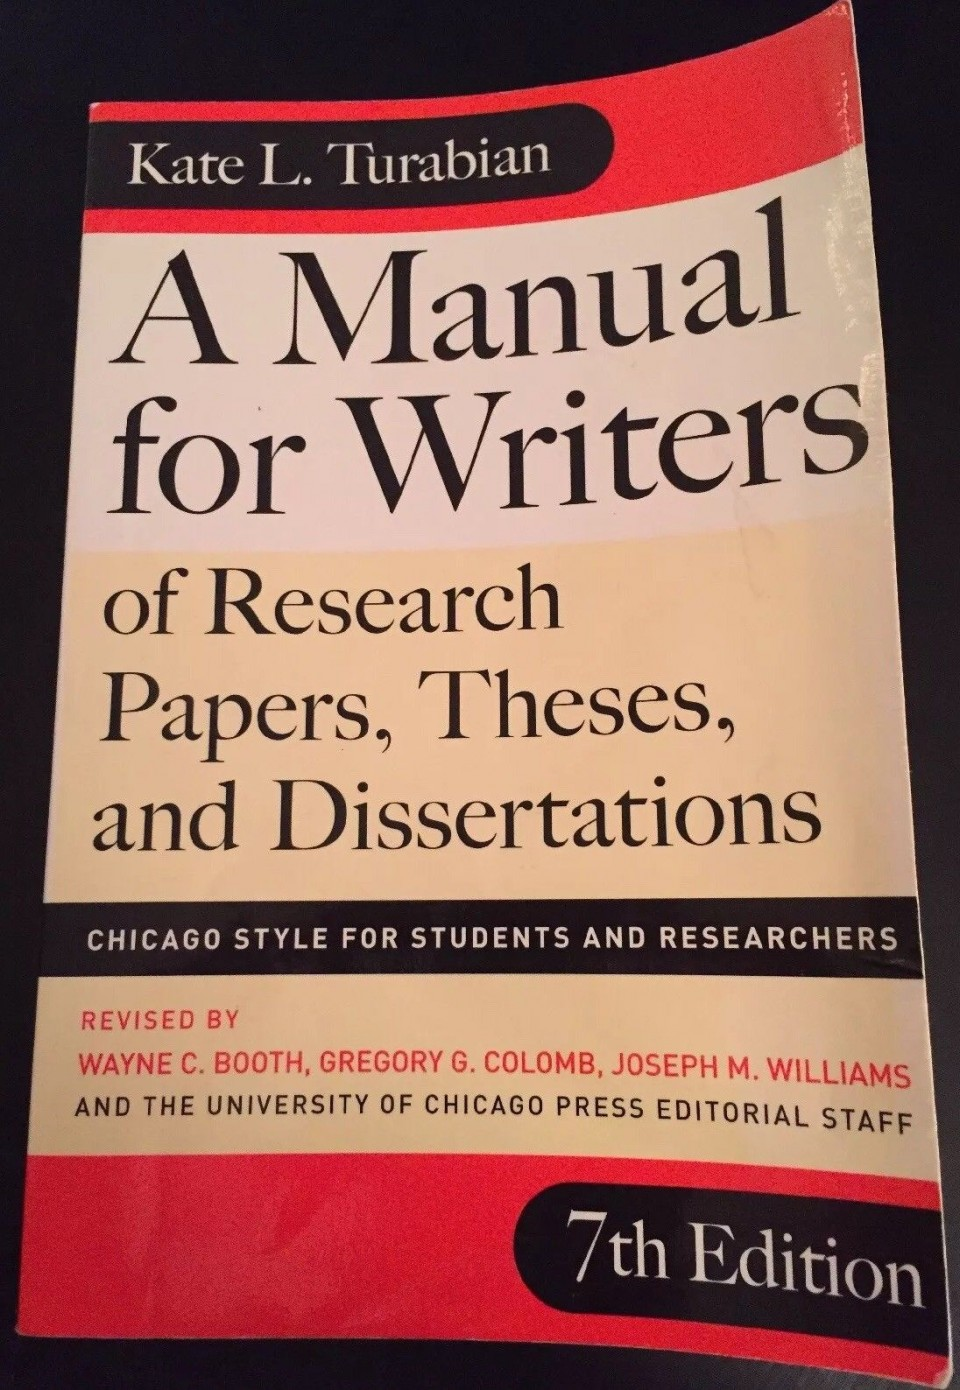 013 S L1600 Research Paper Manual For Writers Of Papers Theses And Sensational A Dissertations 8th Edition Pdf Eighth 960